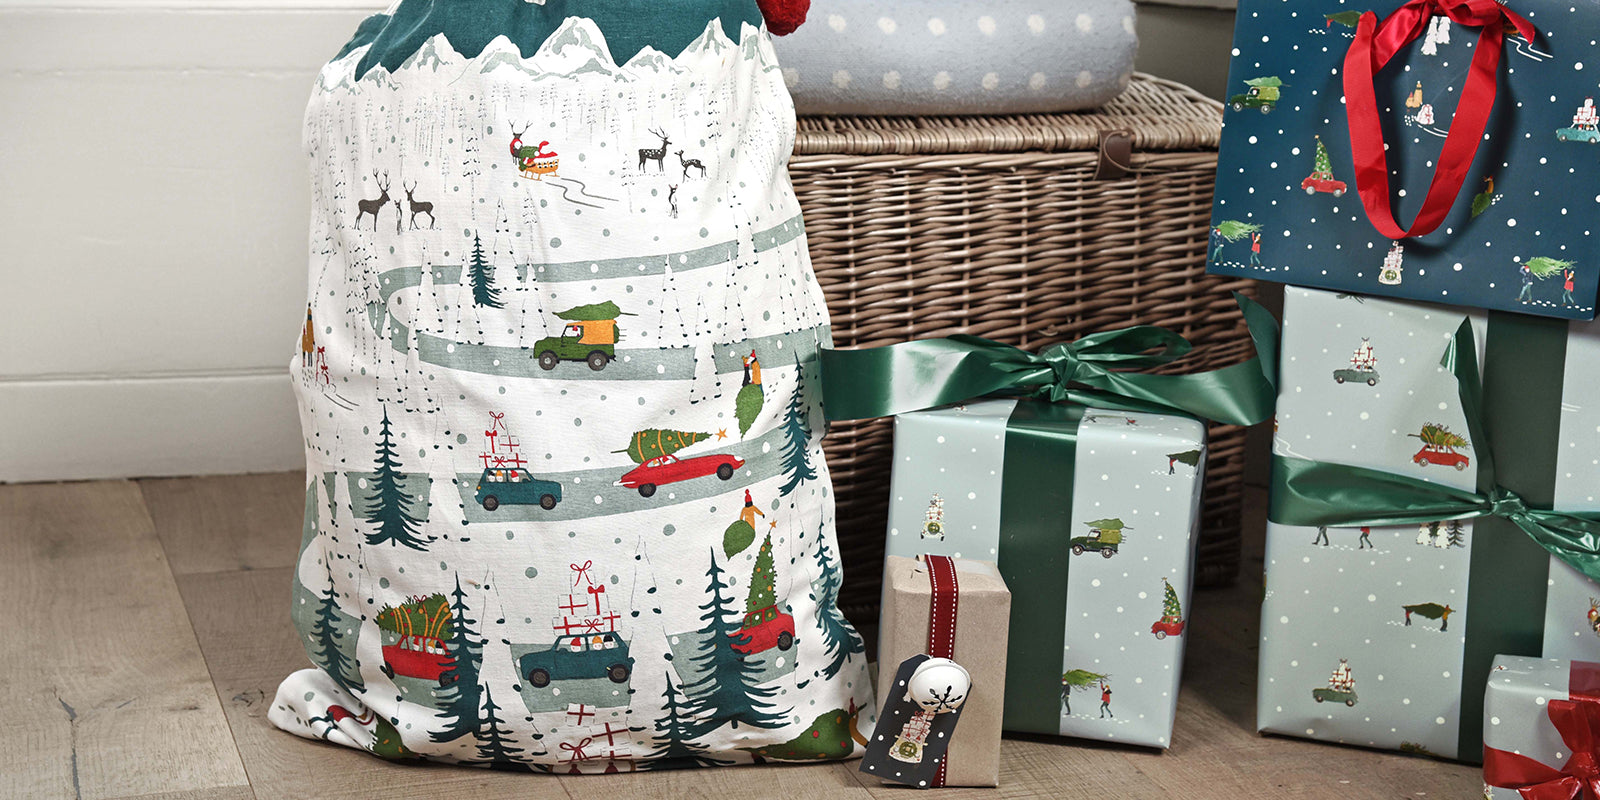 Christmas Stockings and Sacks by Sophie Allport